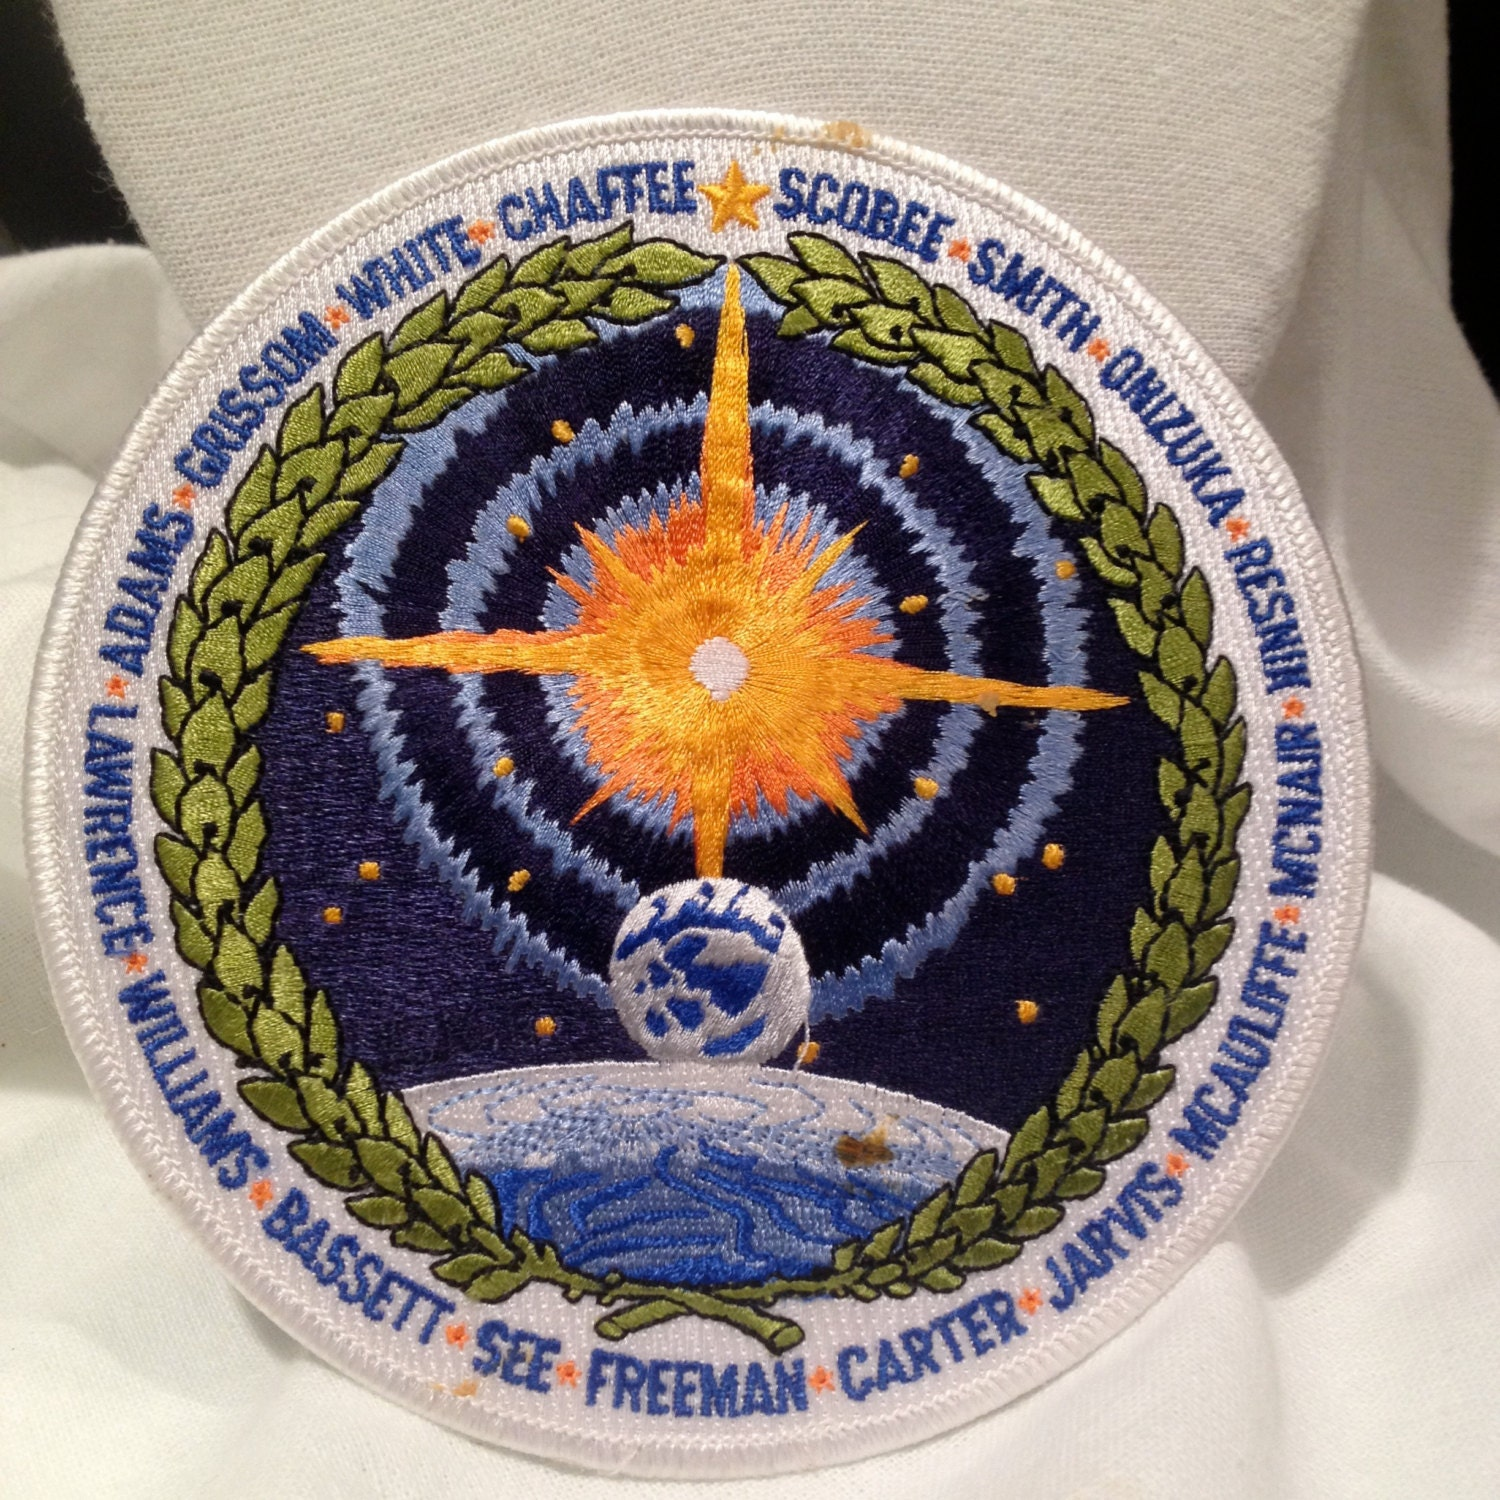 astronaut apollo patches - photo #9